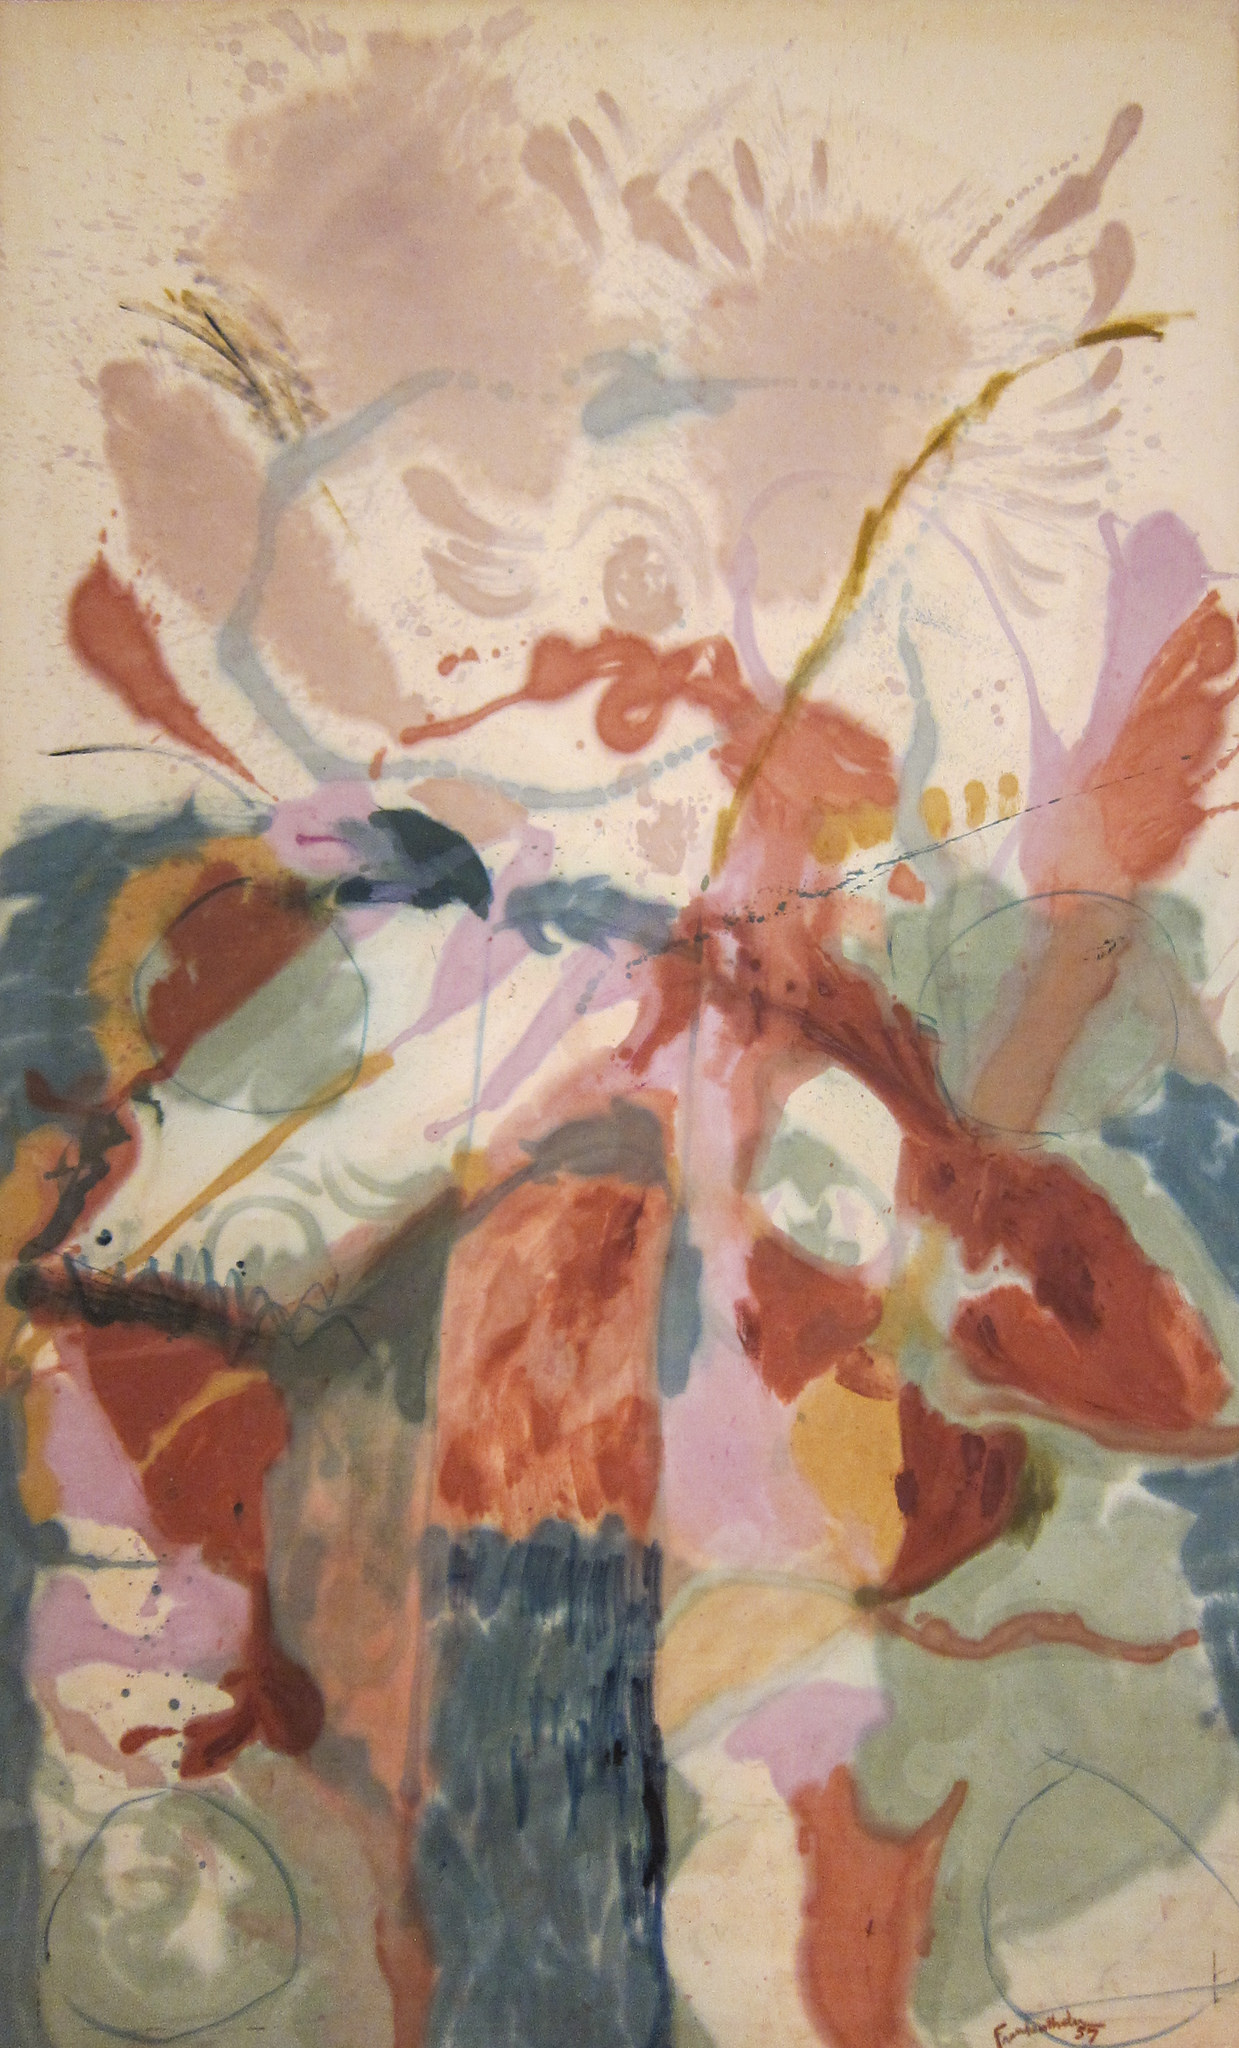 Helen Frankenthaler, Jacob's Ladder, 1957